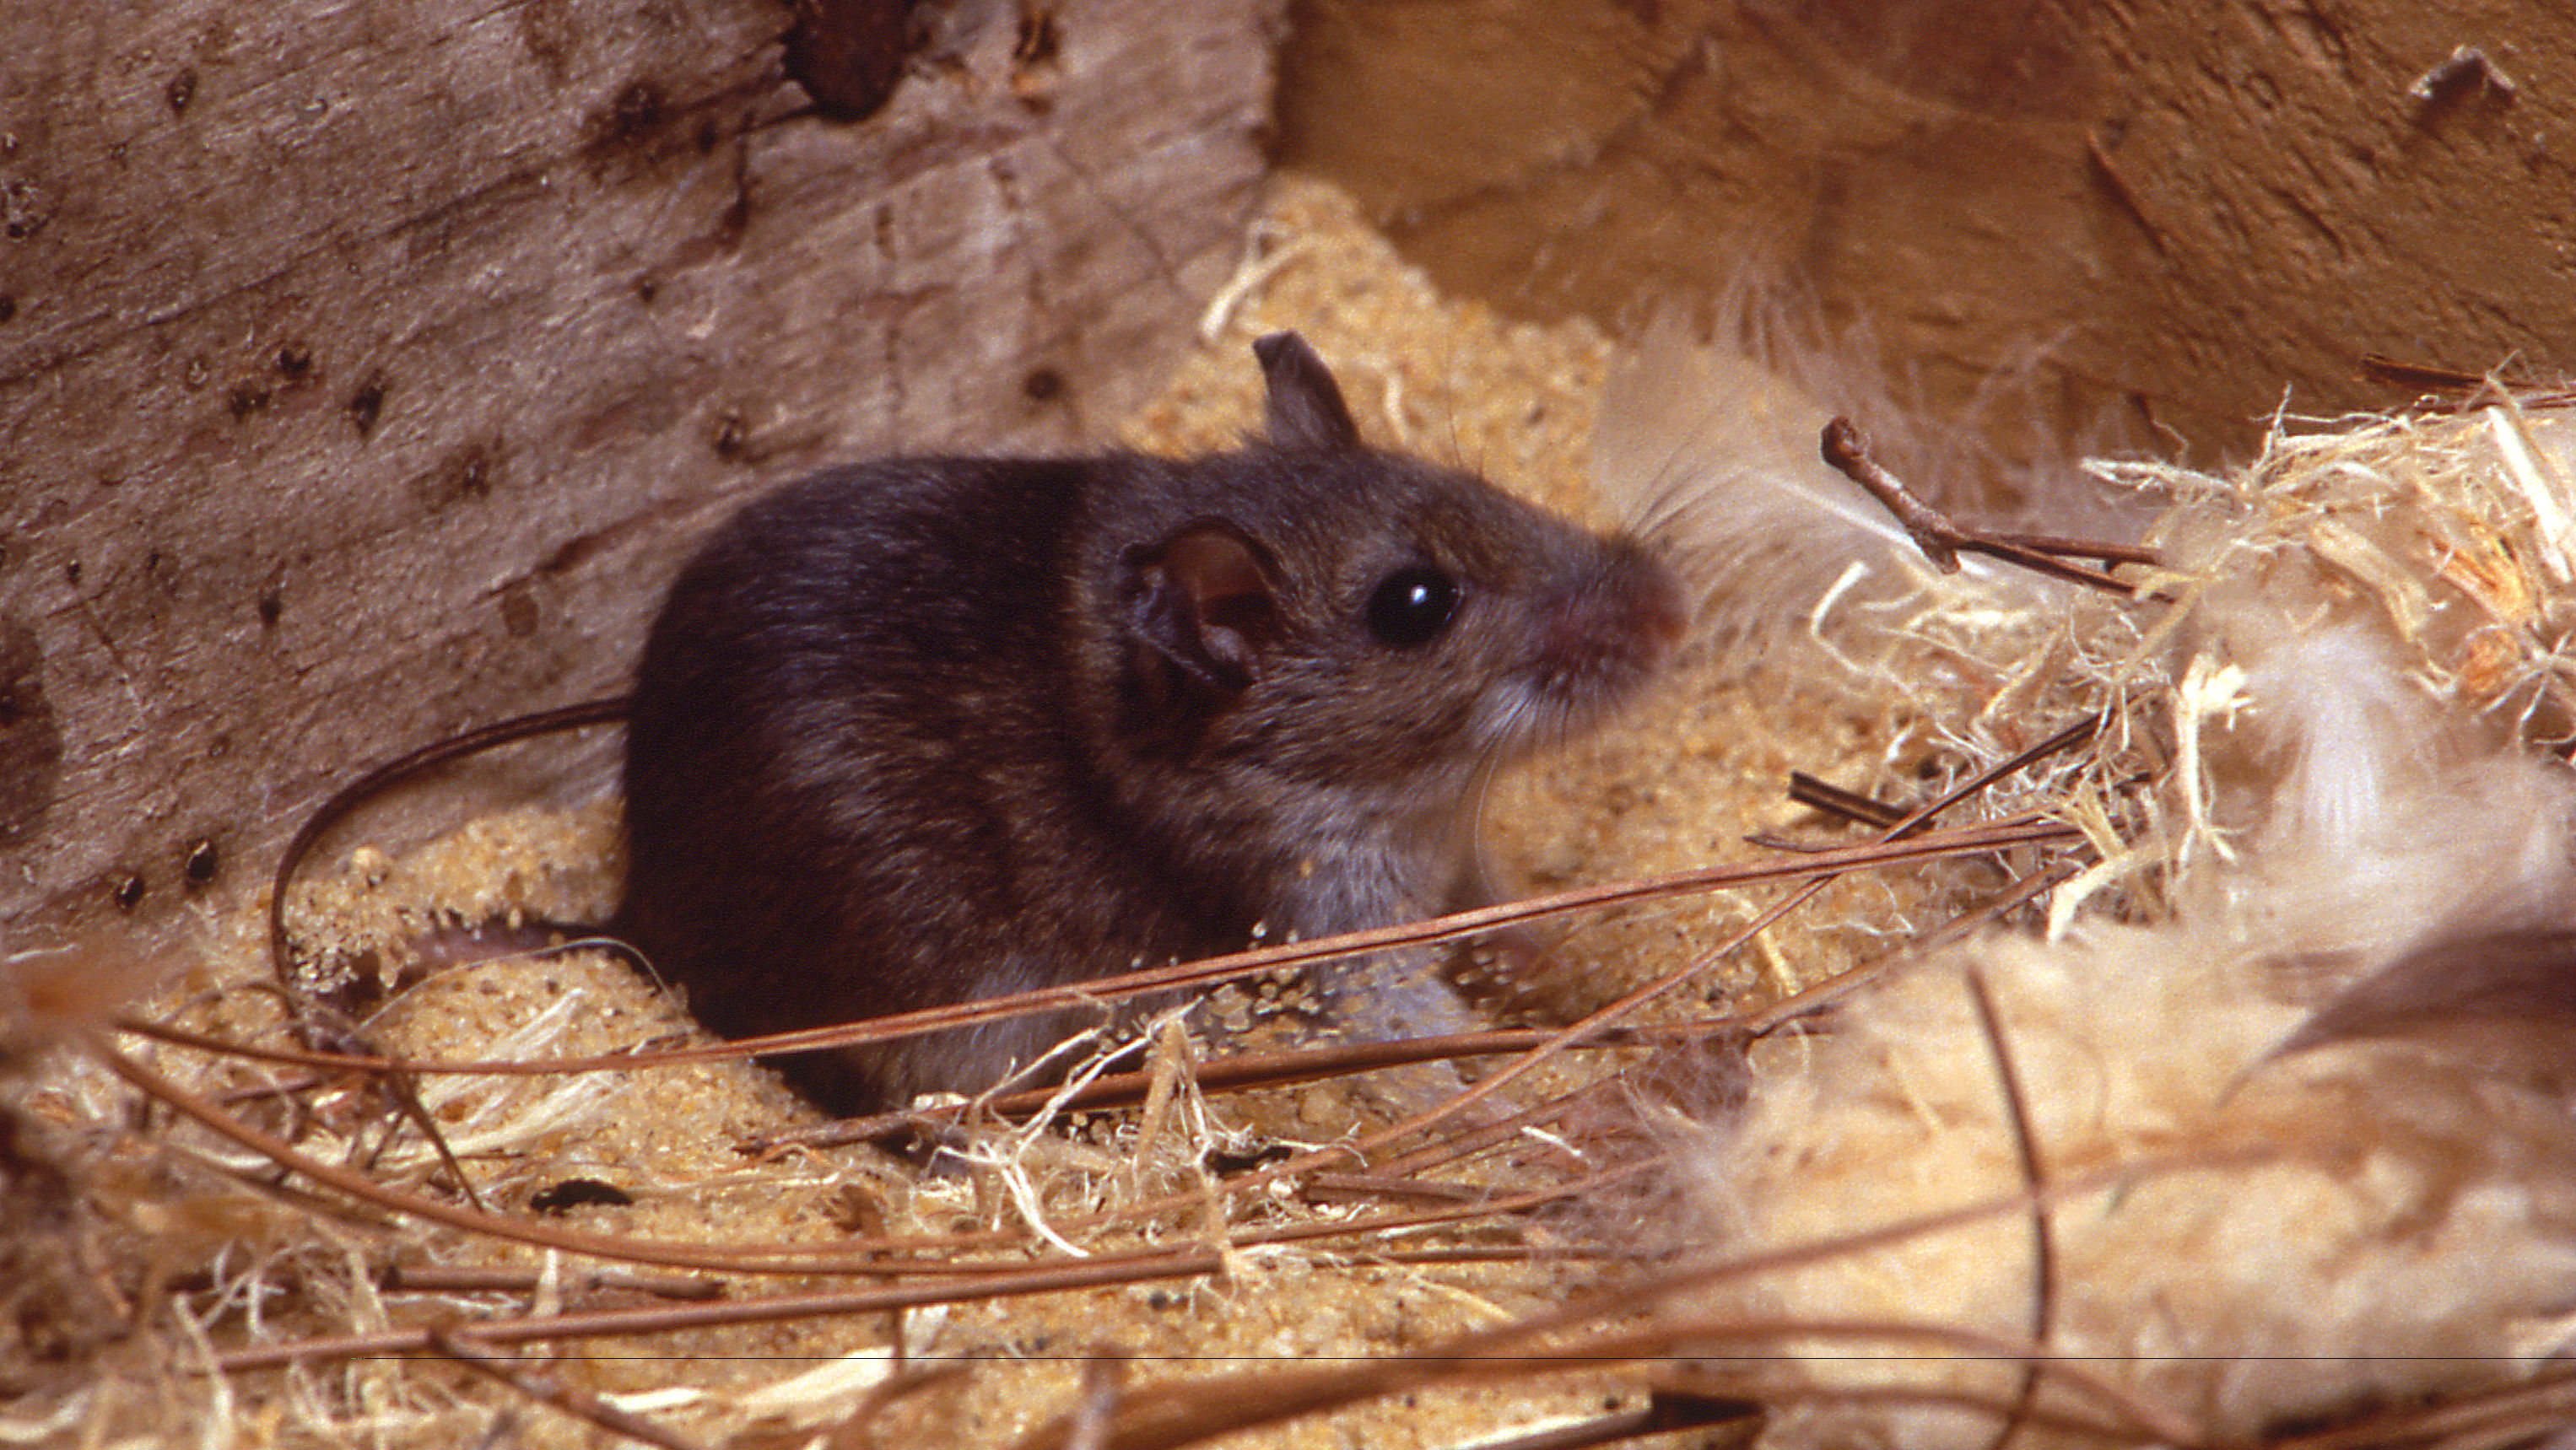 A deer mouse in a sawdust, pine needle, and bird feather habitat is seen in this handout photo obtained by Reuters, July 6, 2017. The deer mice are the principal reservoir of Sin Nombre (SN) virus, the primary etiologic agent of hantavirus cardiopulmonary syndrome (HCPS) in North America, a relatively-new acute respiratory illness.